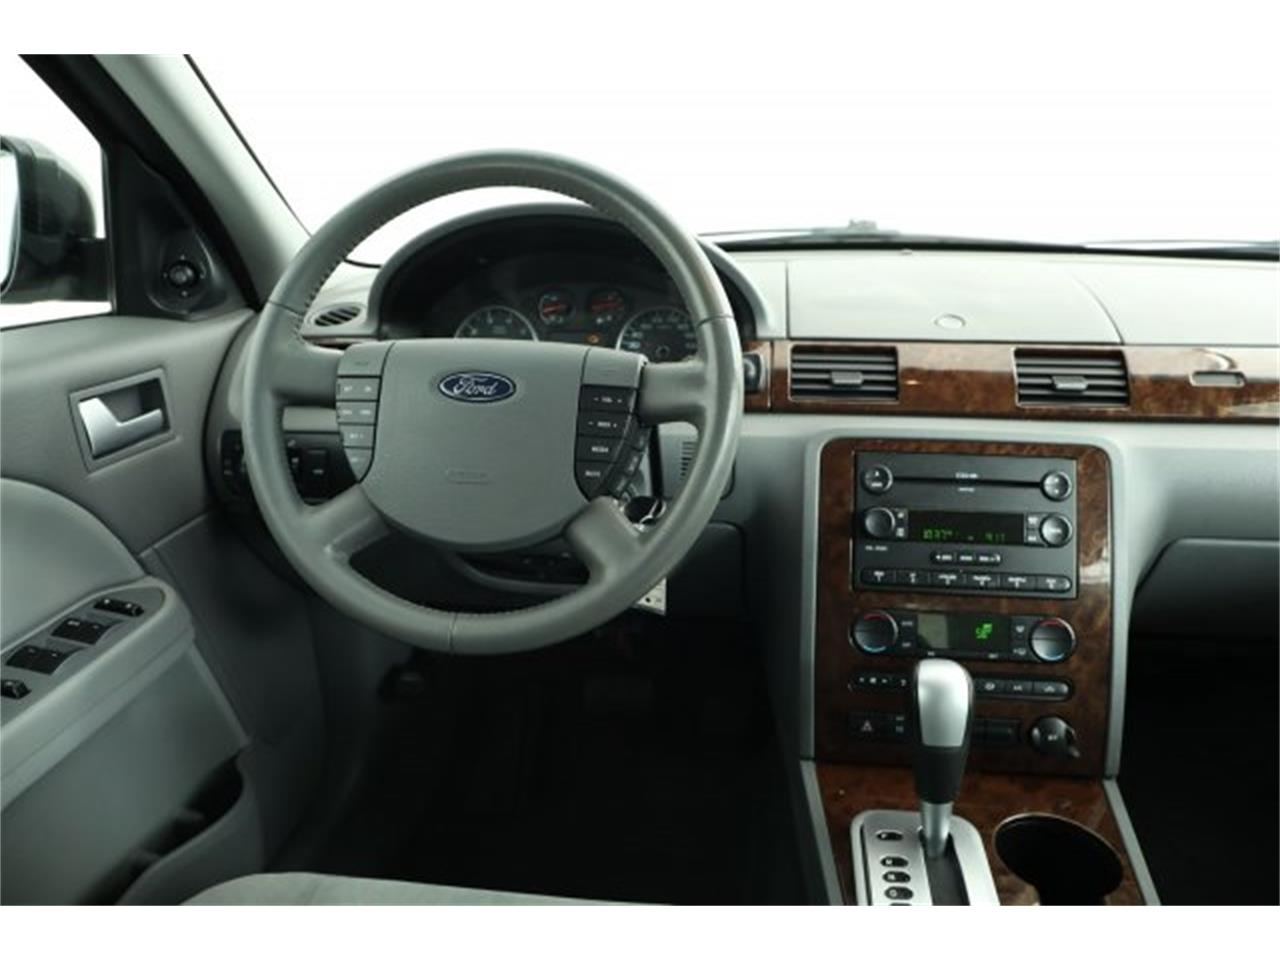 Large Picture of '05 Ford Five Hundred located in Lynnwood Washington - $6,995.00 - LER1